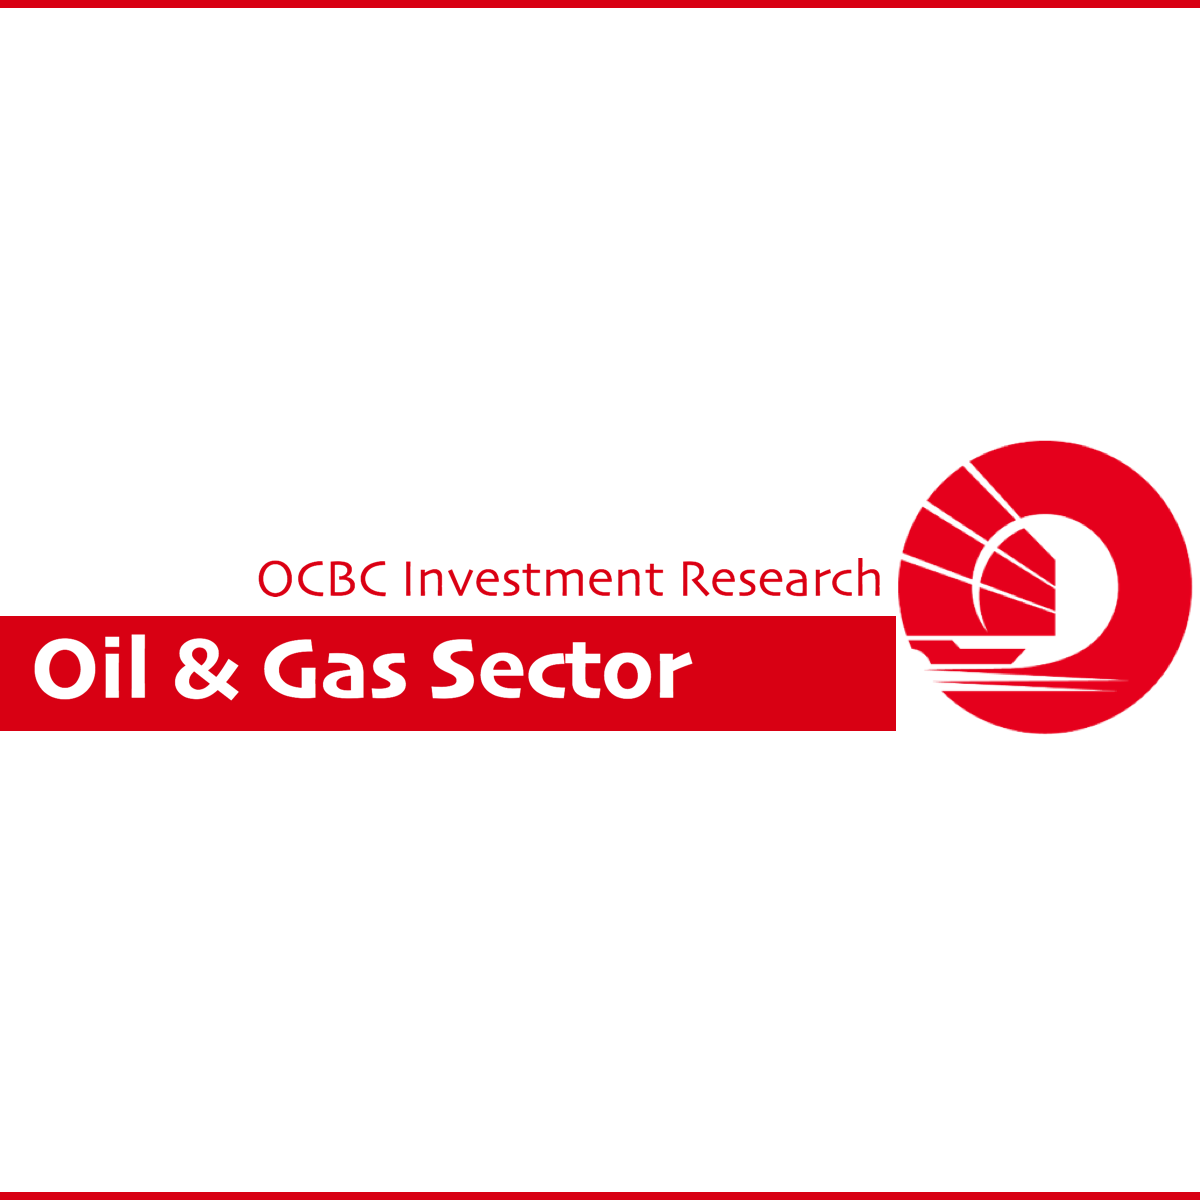 Oil & Gas Sector - OCBC Investment 2018-05-08: Geopolitical Risk Vs U.s. Shale